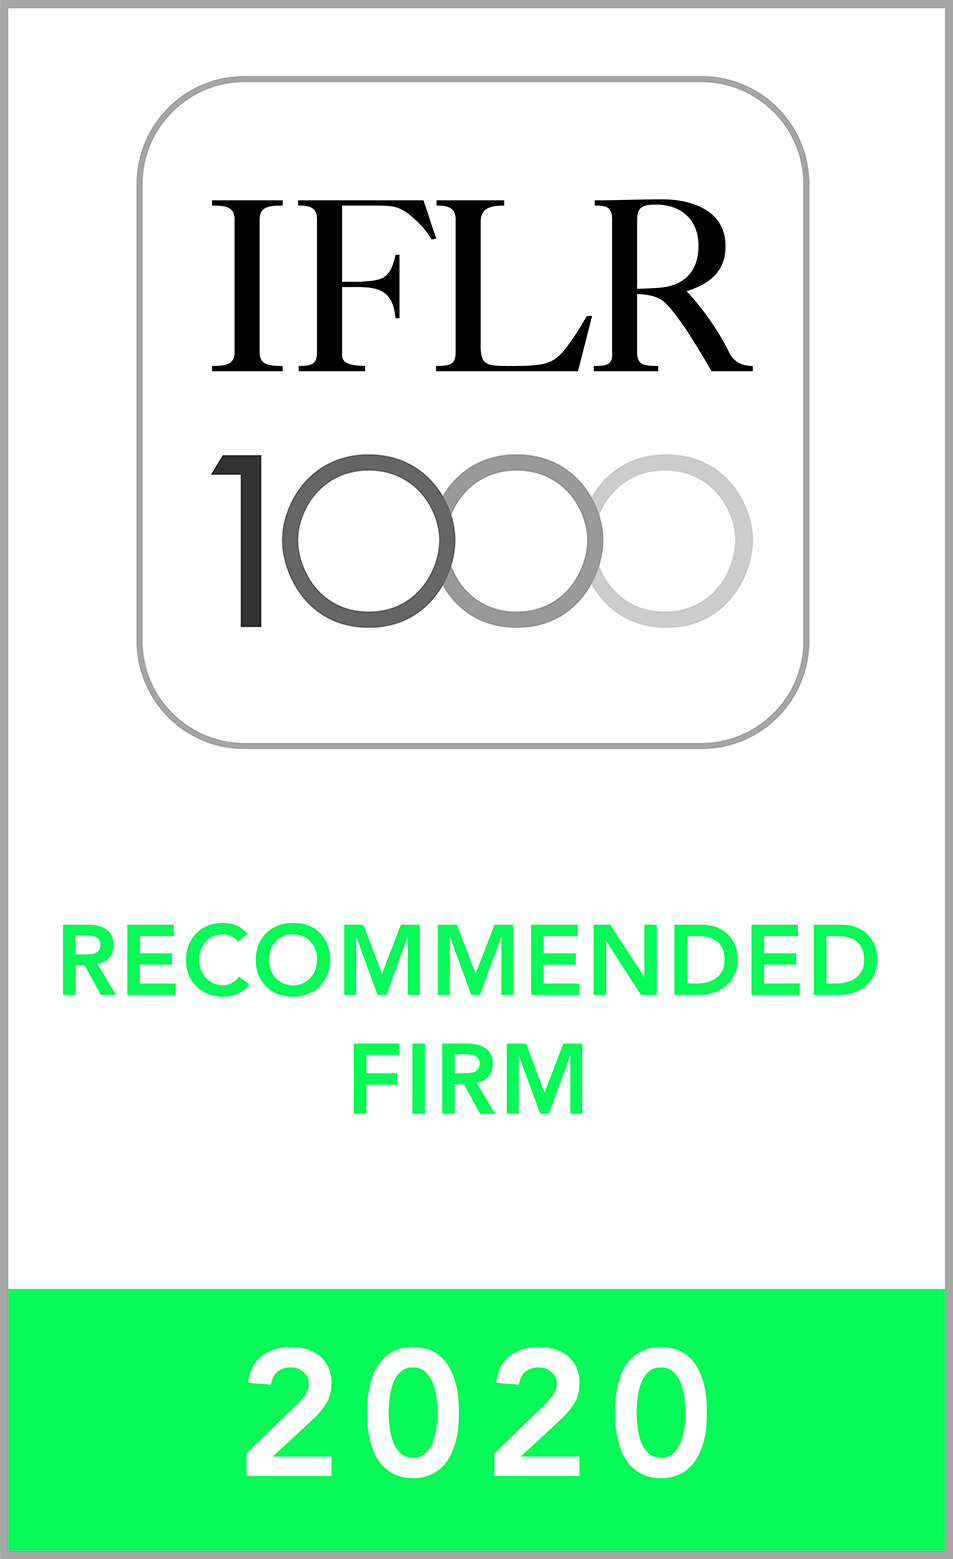 MAR & Associates recommended law firm in 2020 by IFLR1000